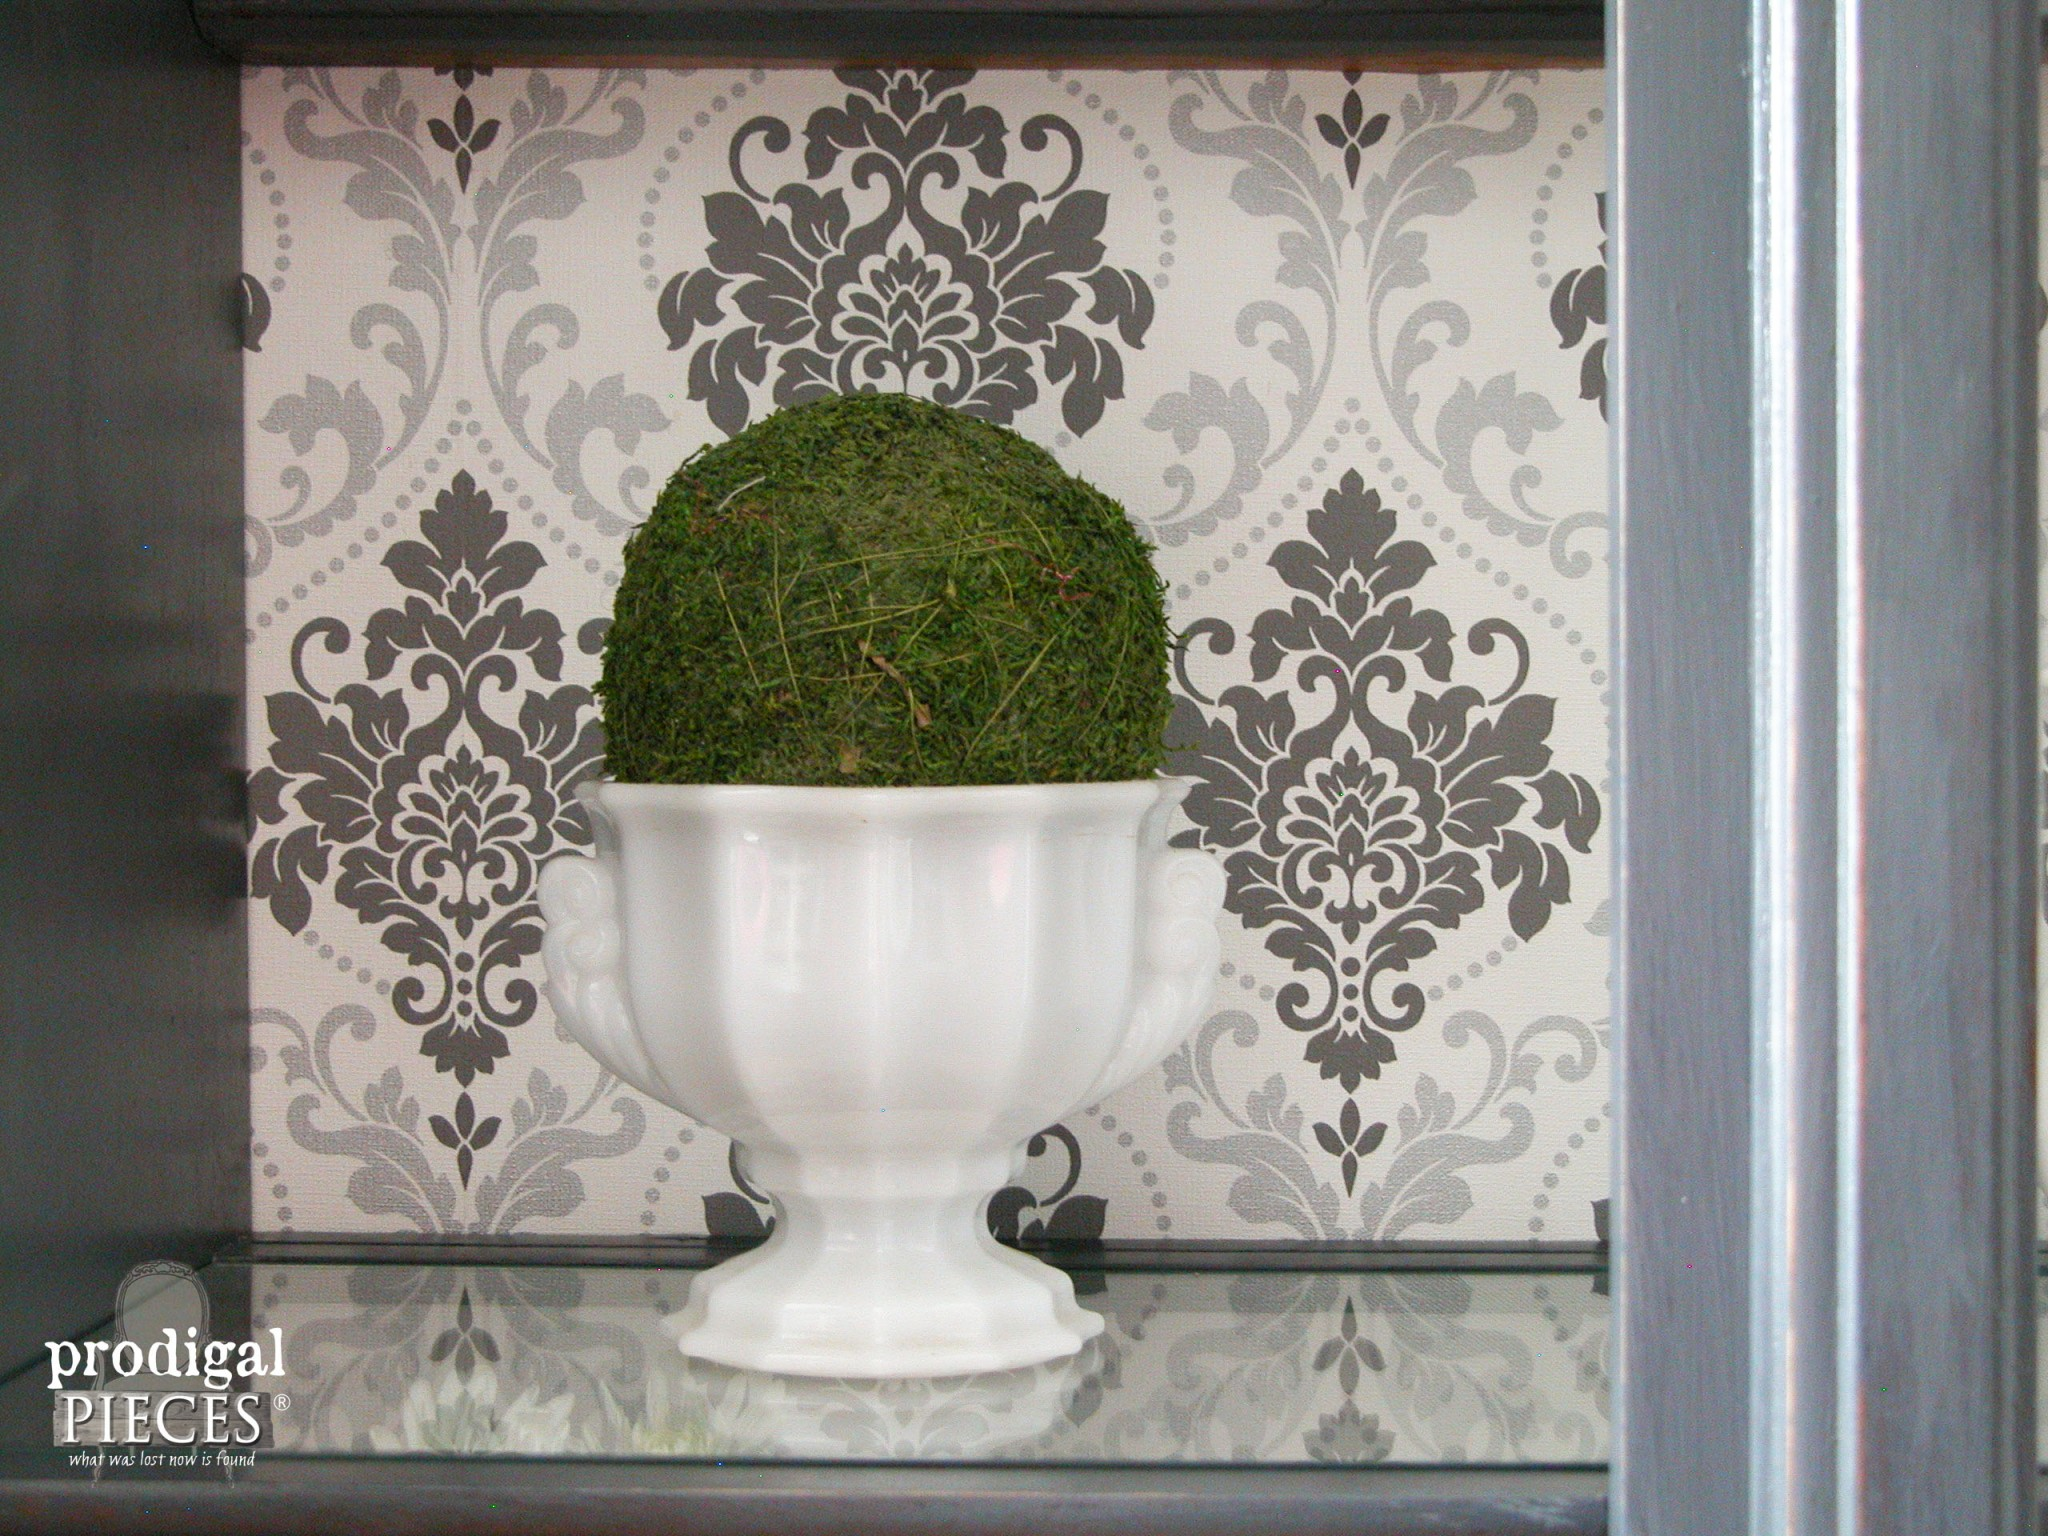 Damask Wallpaper as China Cabinet Backing by Prodigal Pieces | www.prodigalpieces.com